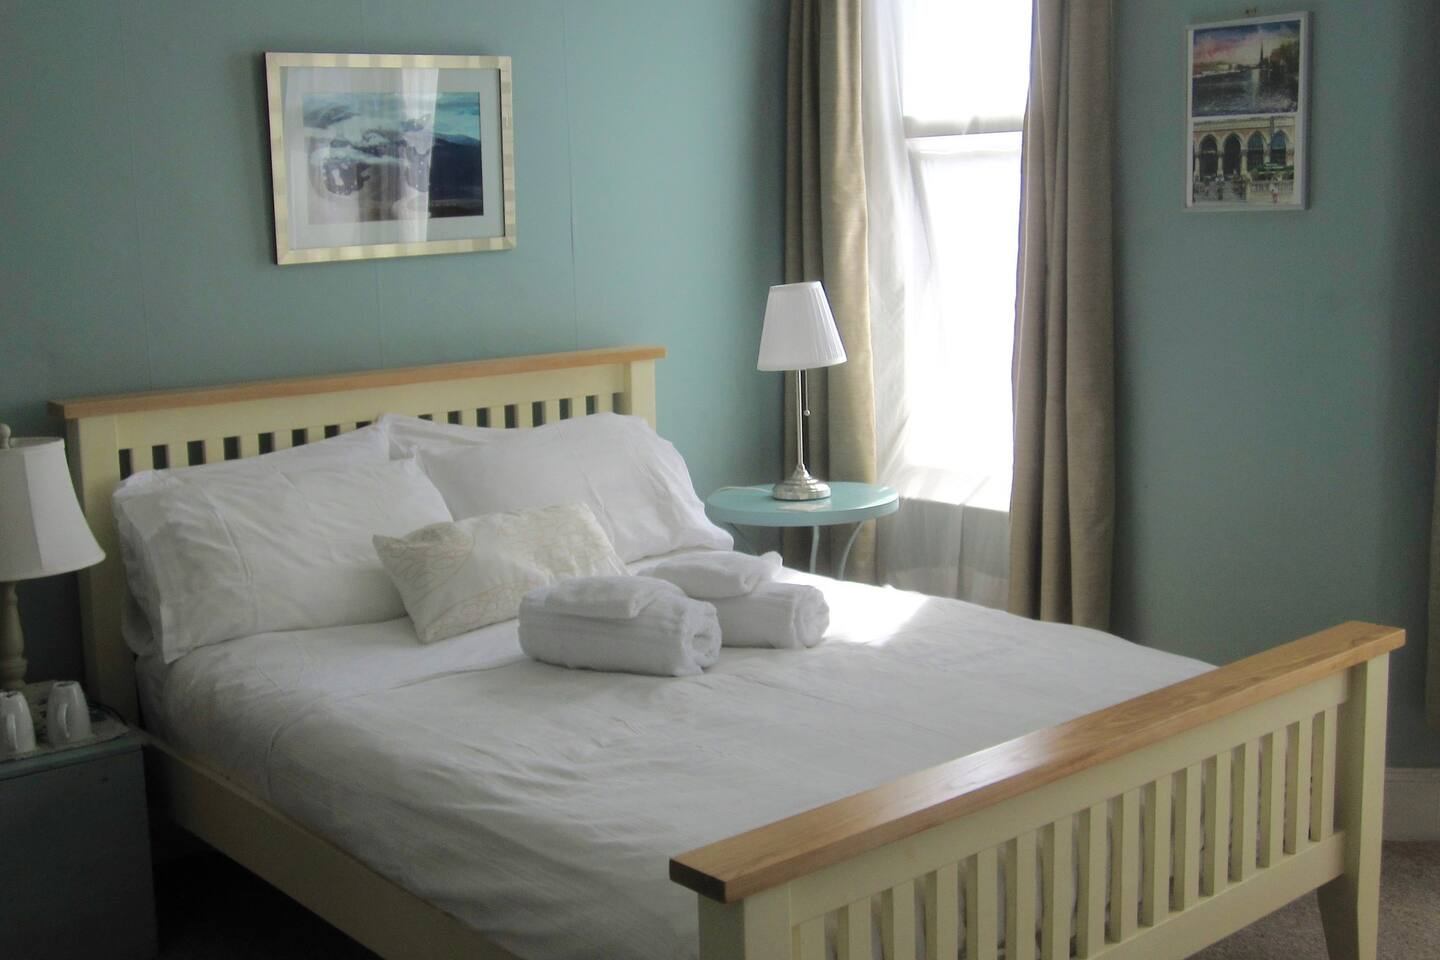 Comfortable bed; quiet, airy, light room